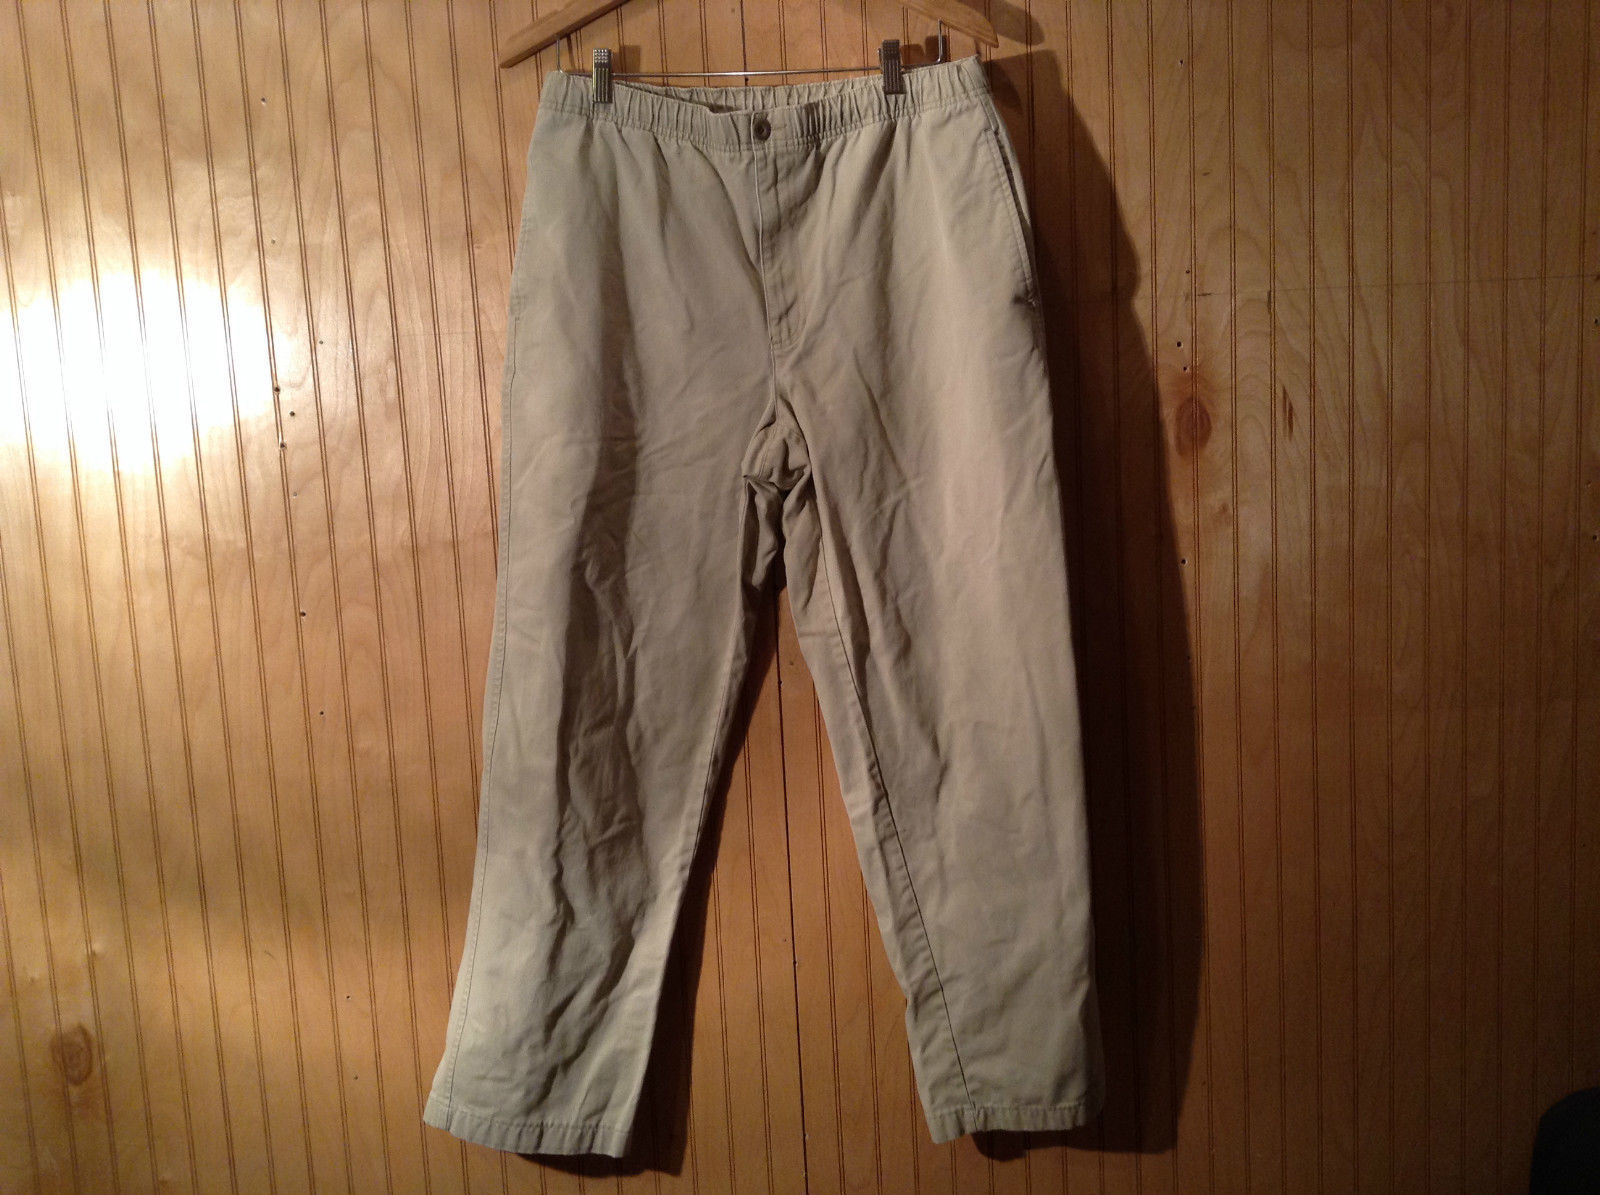 Lands End Khaki Drawstrings Pants Size 32 to 34 Medium Button Zipper Closure